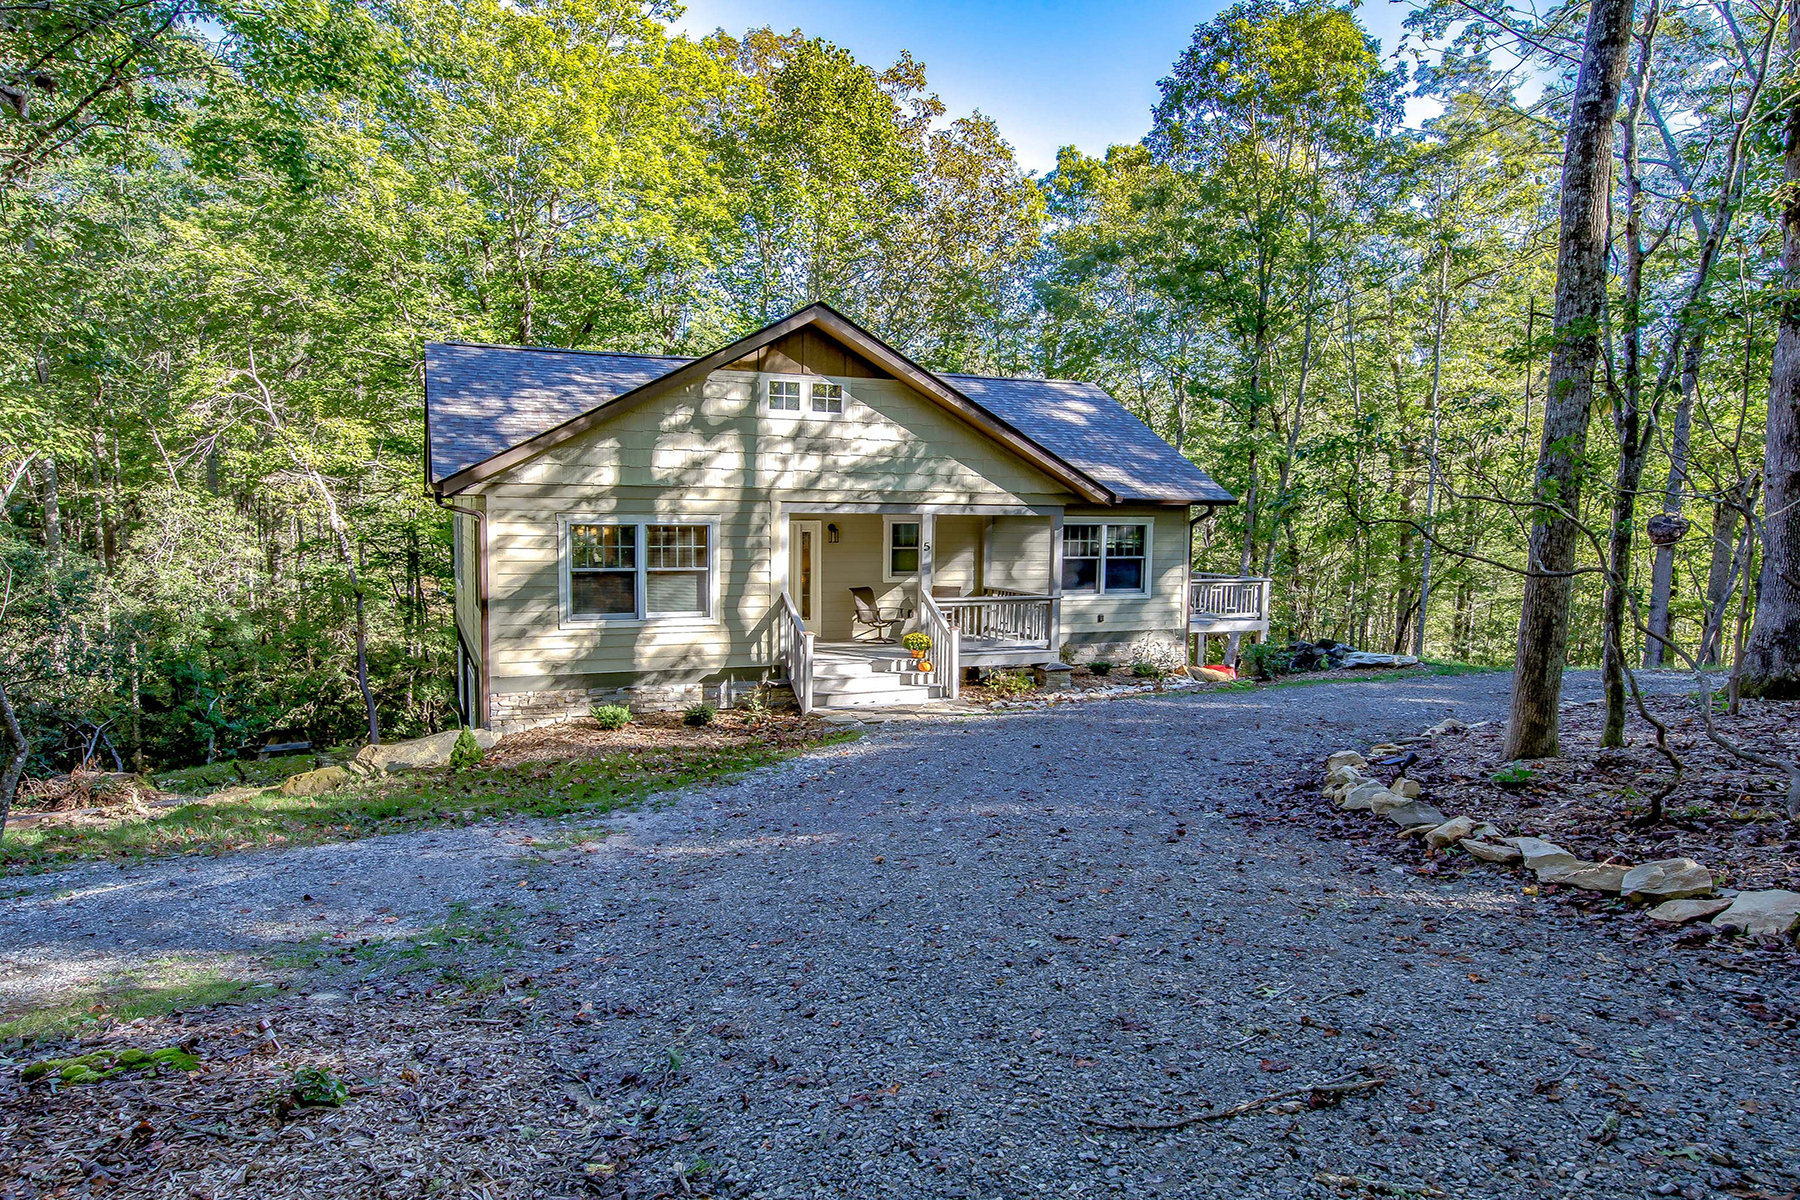 Single Family Home for Active at ARTS & CRAFTS WITH A MODERN TOUCH 5 Heidi Way Horse Shoe, North Carolina 28742 United States